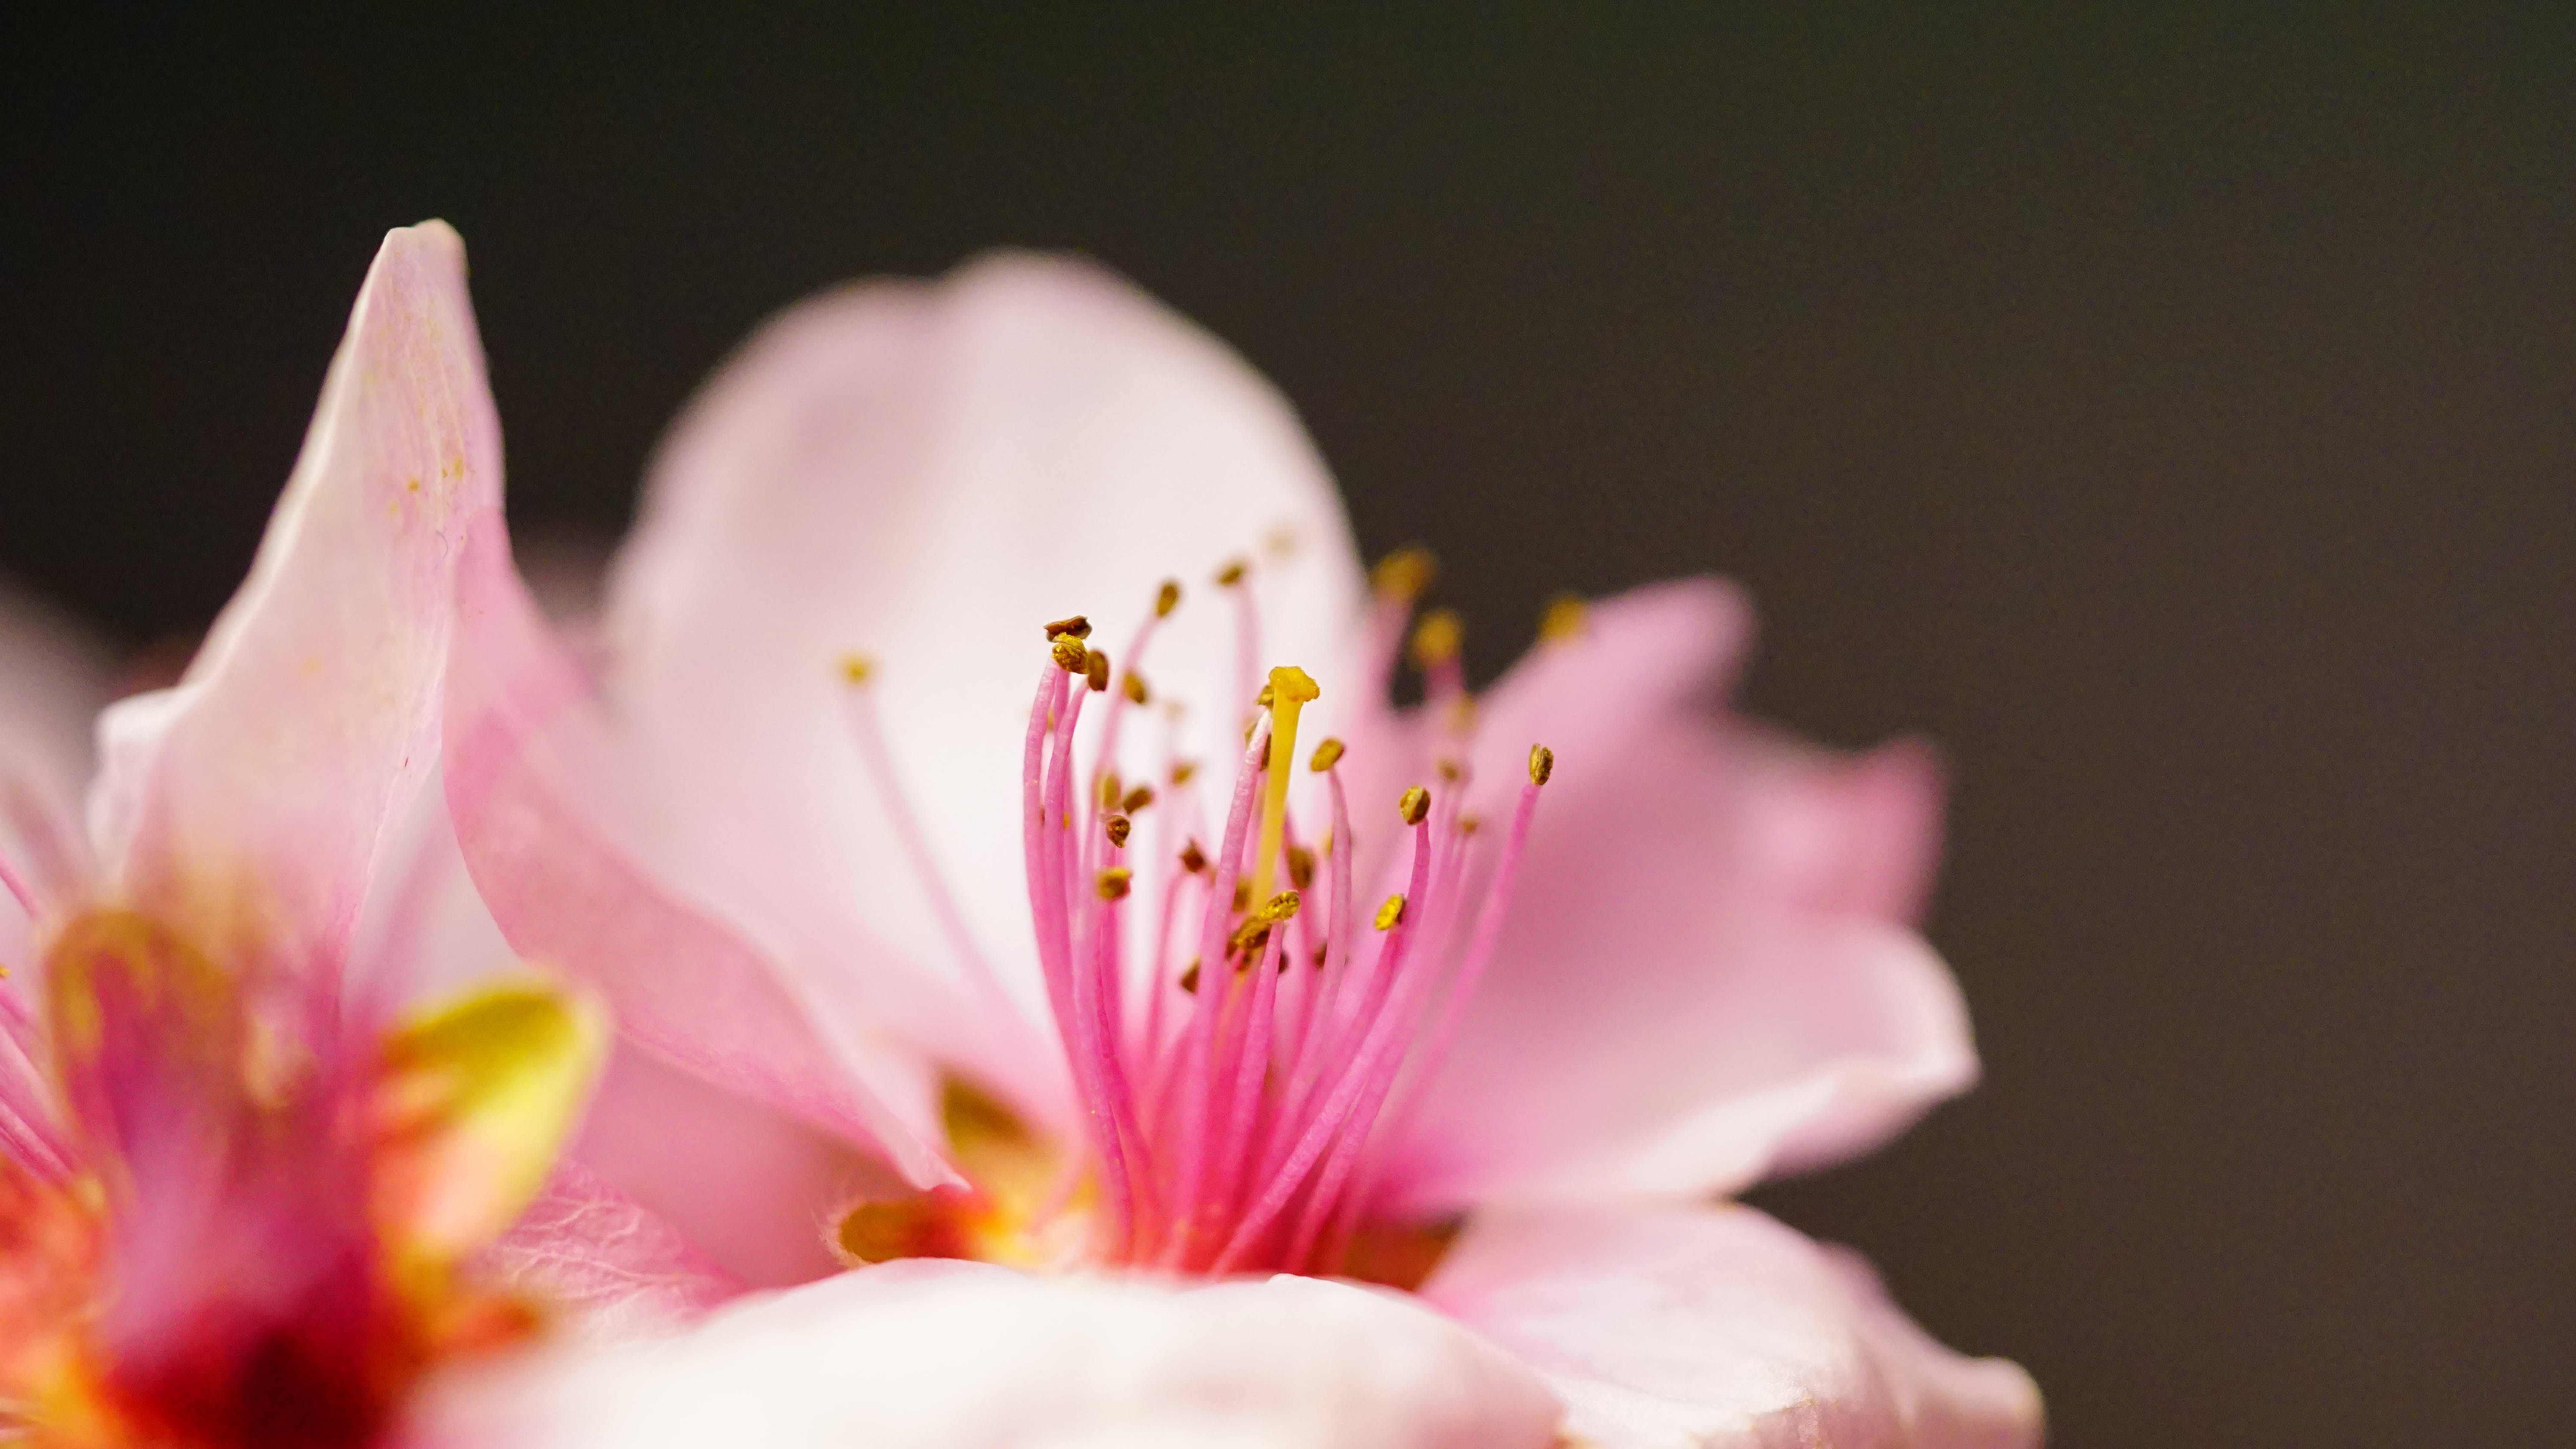 Macro Photography of Pink Flower